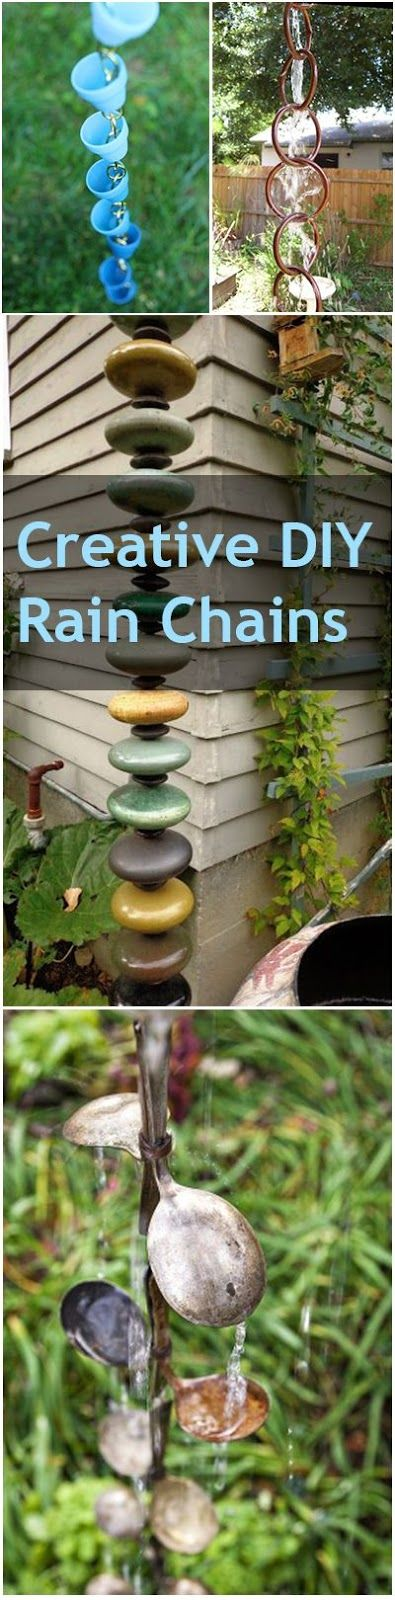 10 Creative DIY Rain Chain Ideas Part 74